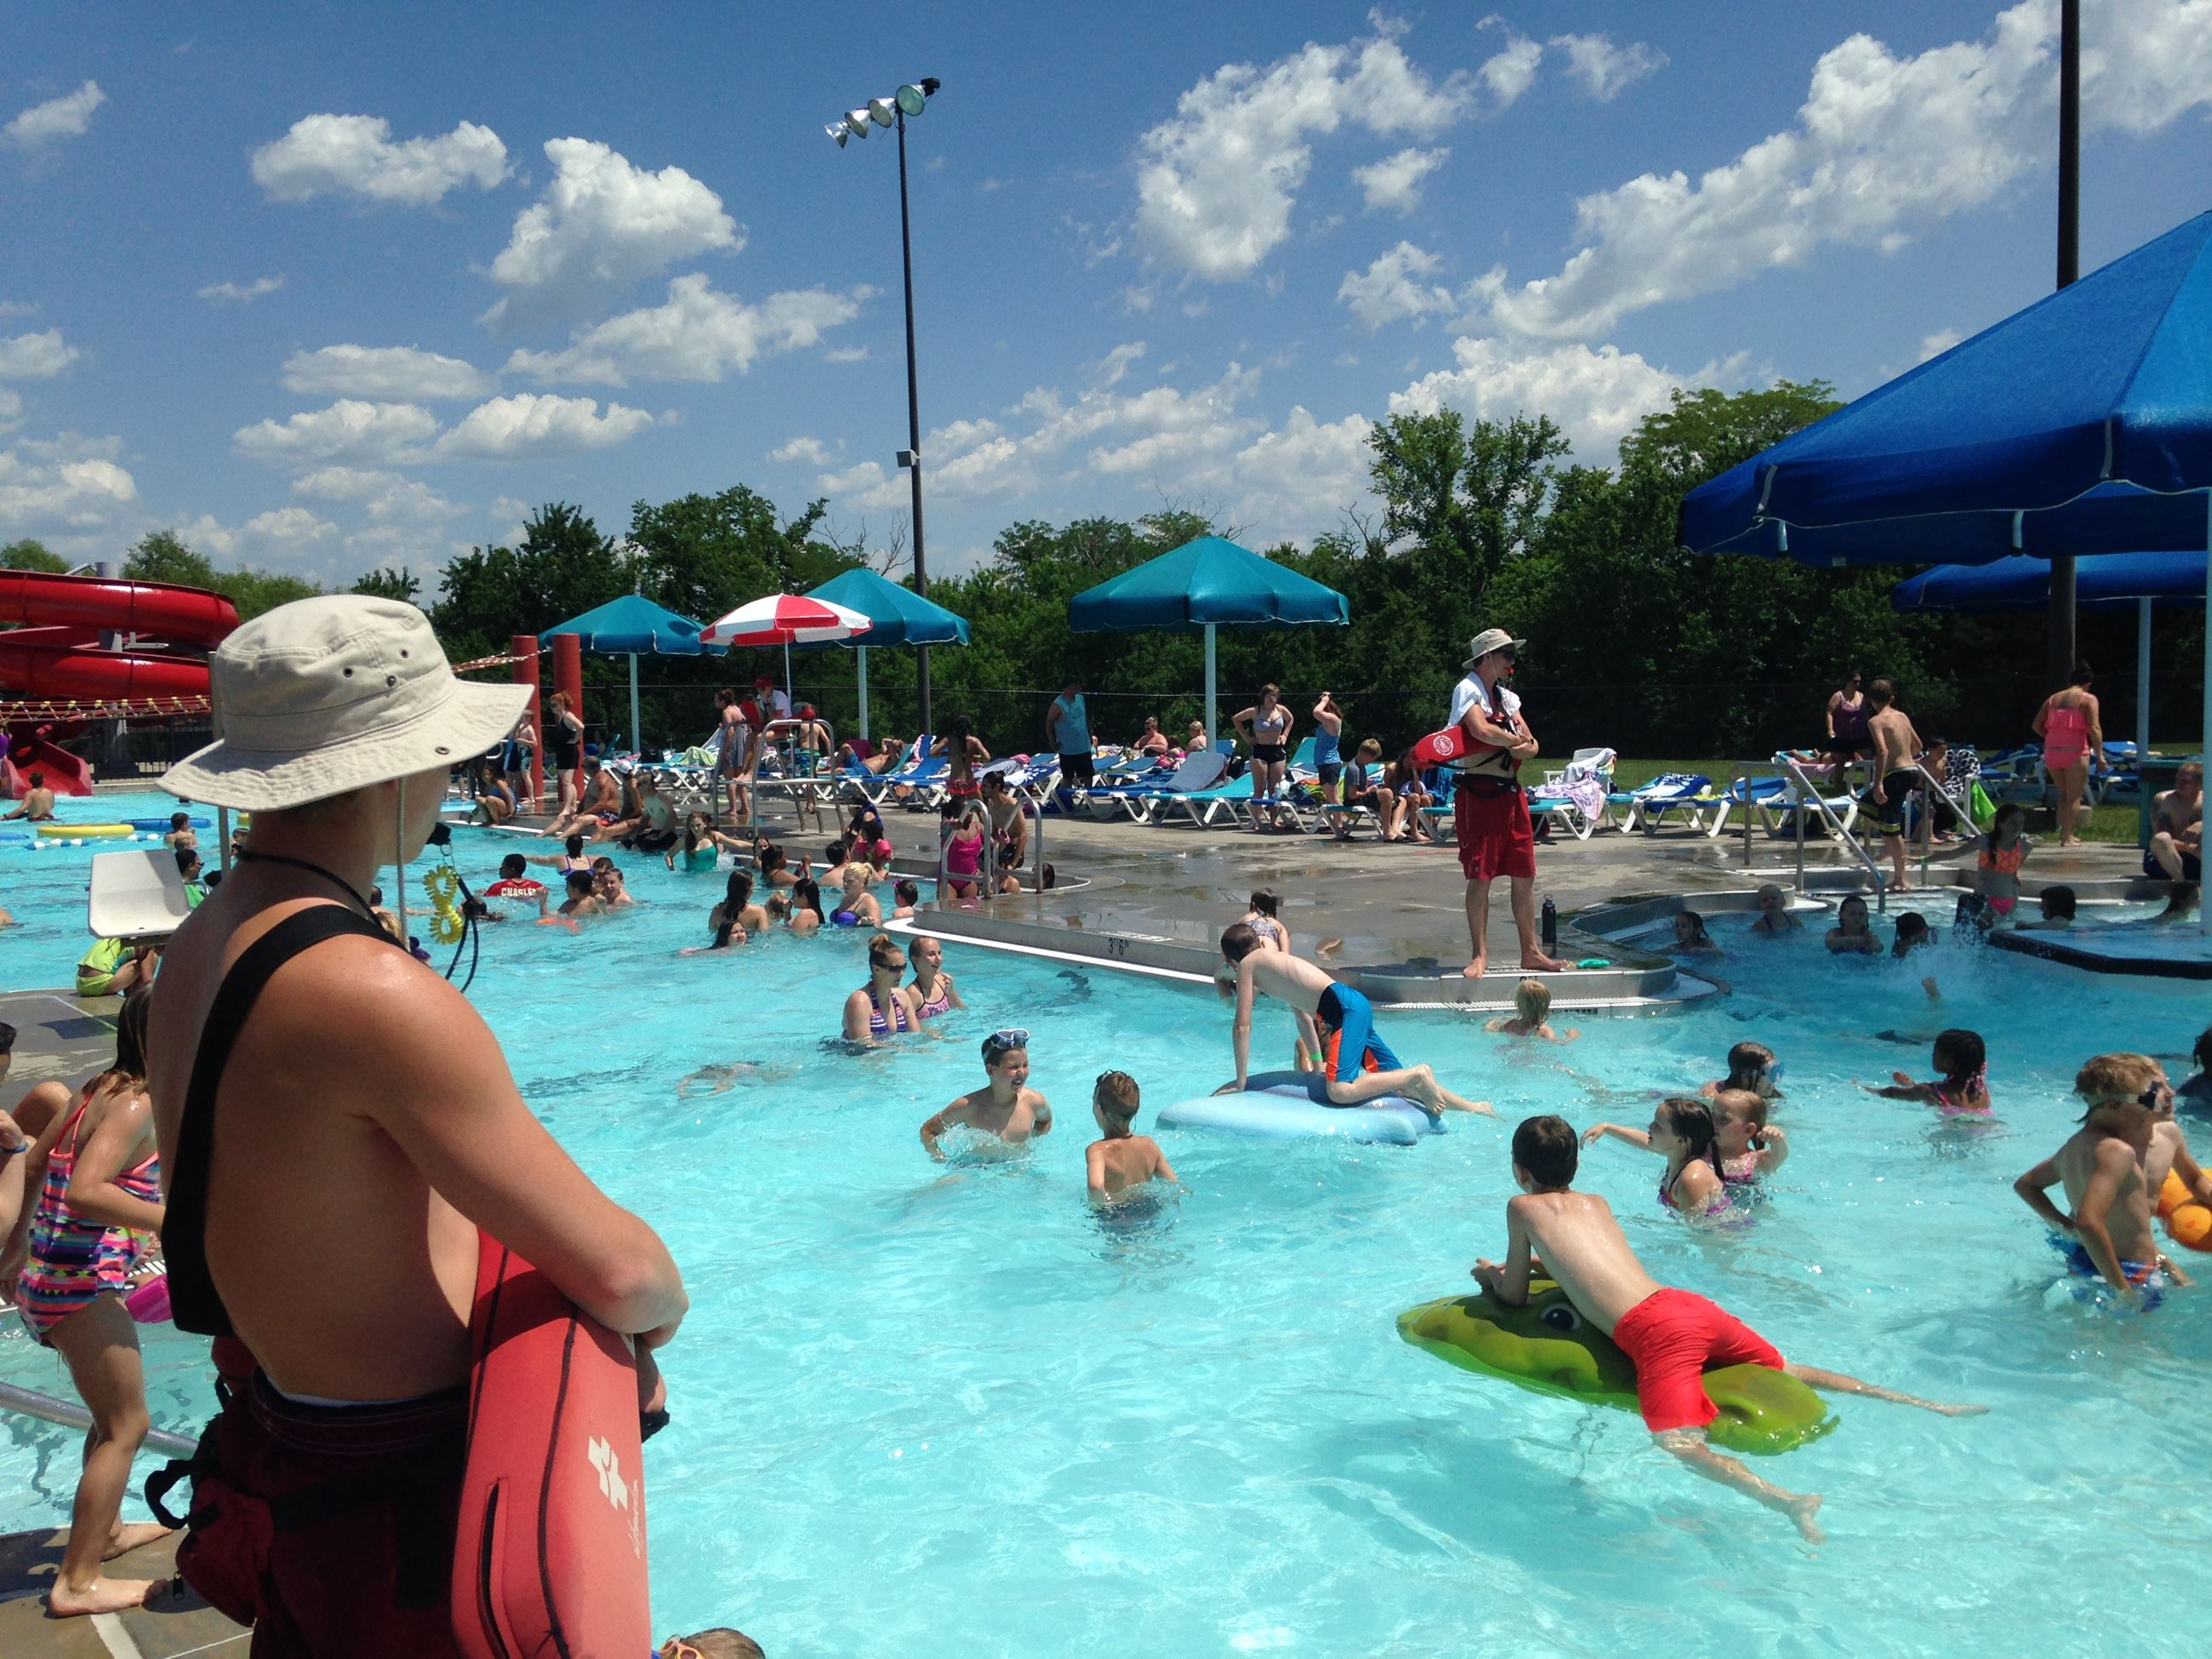 Bonner Springs Aquatic Park